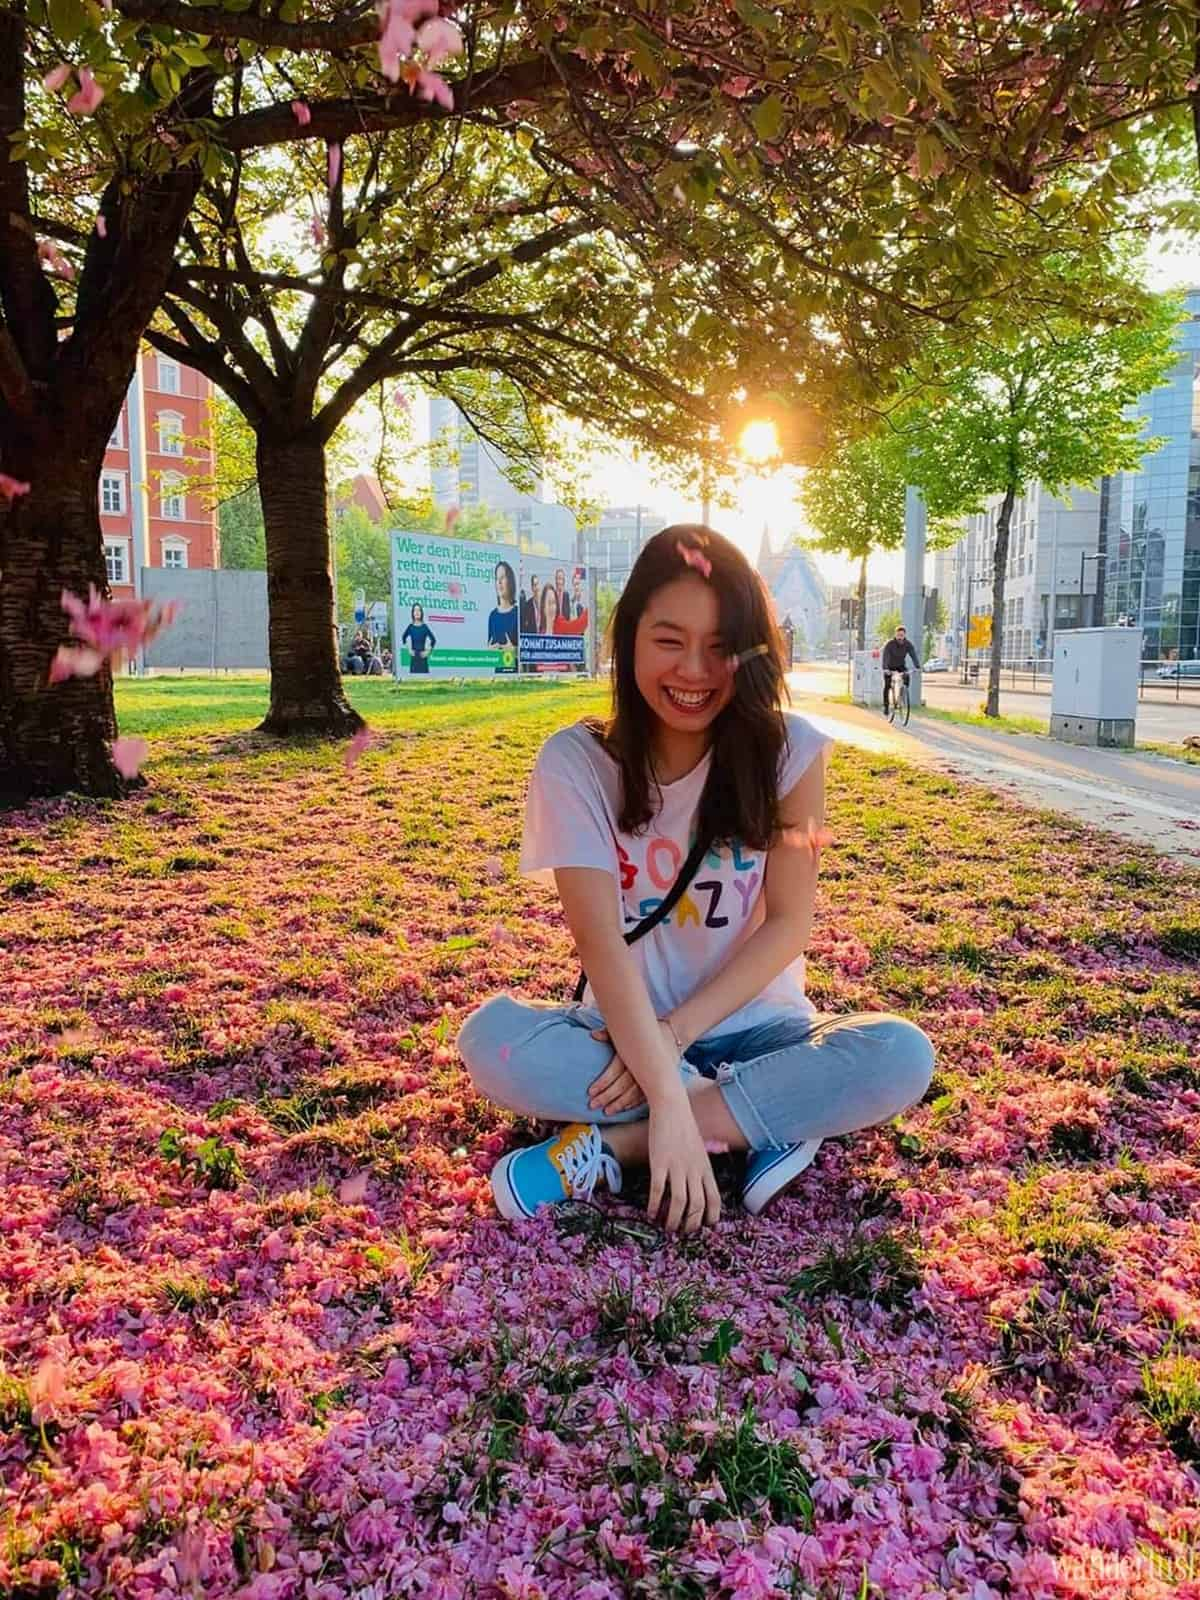 Wanderlust Tips magazine   Share the love with travel: Spring in bloom